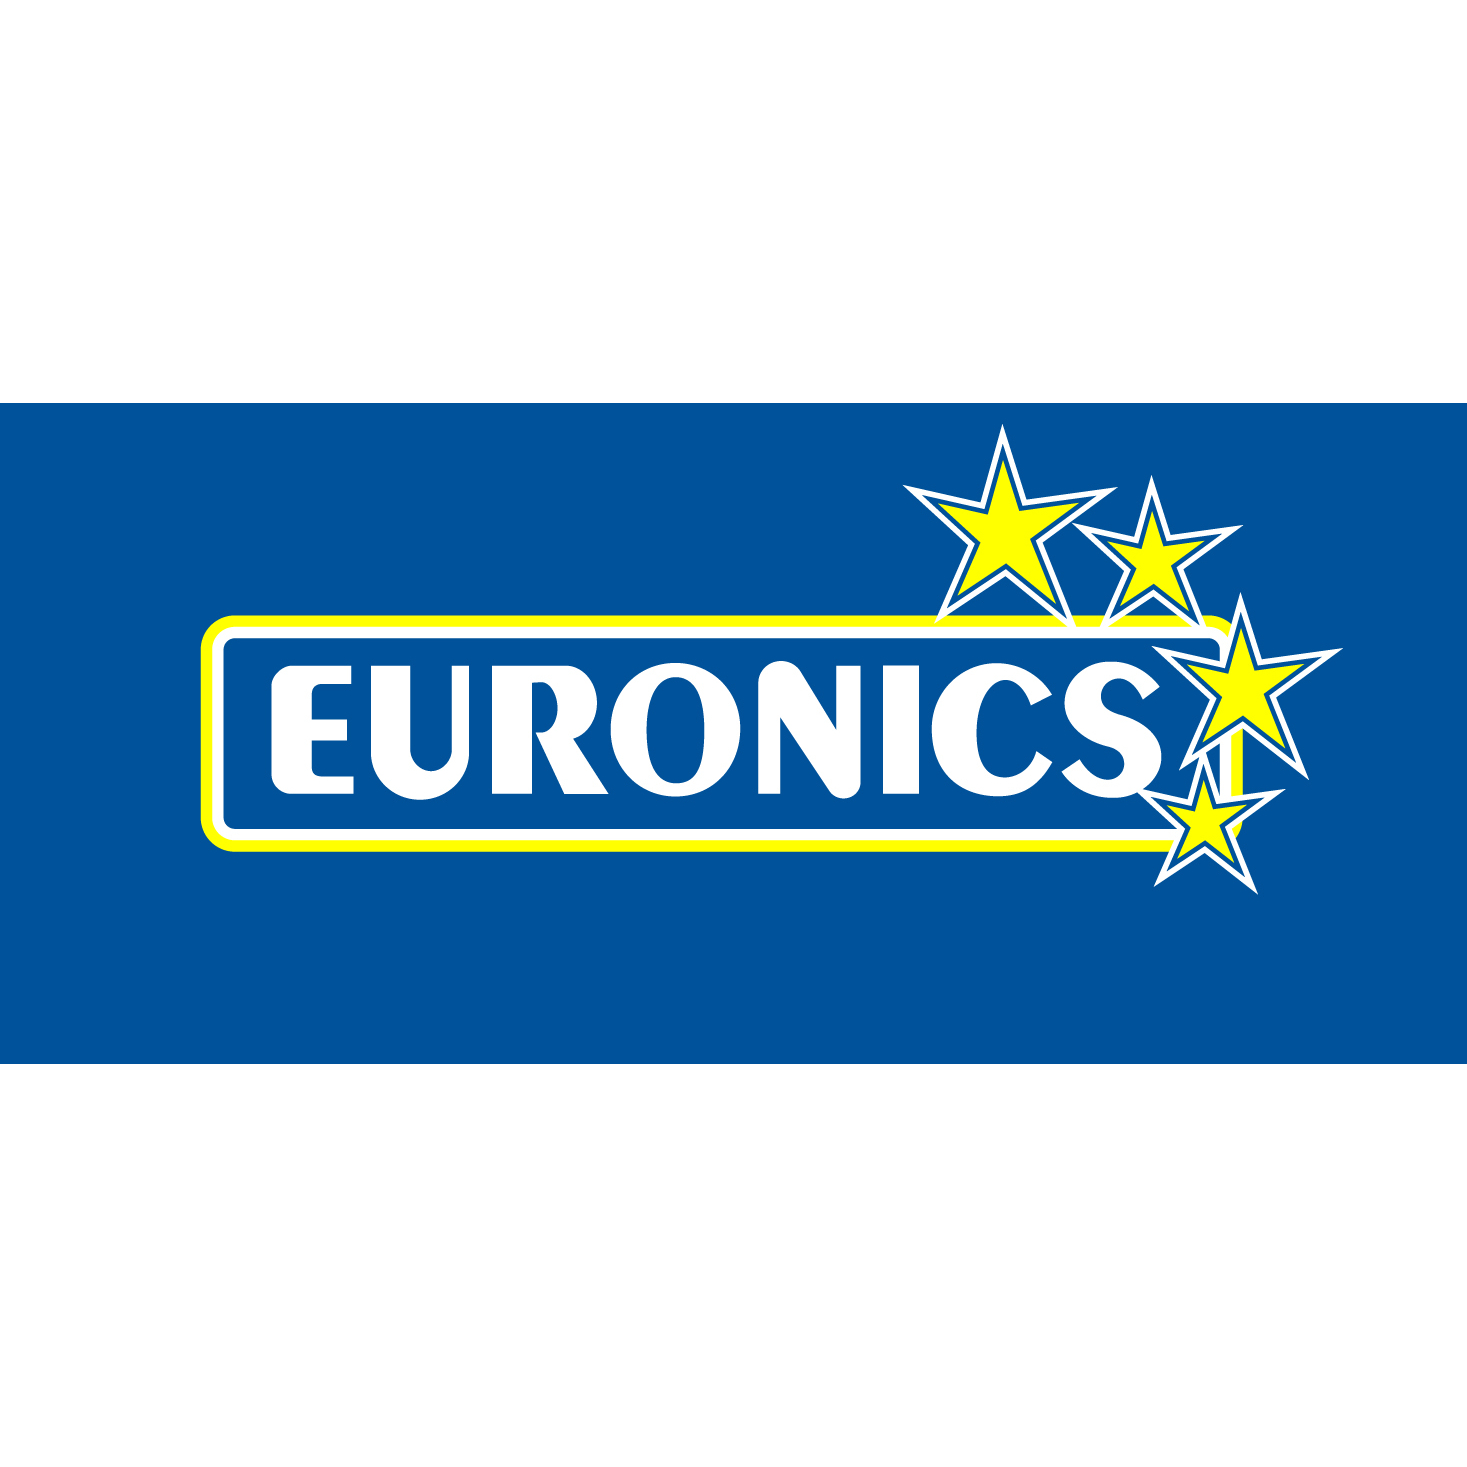 EURONICS Fecher